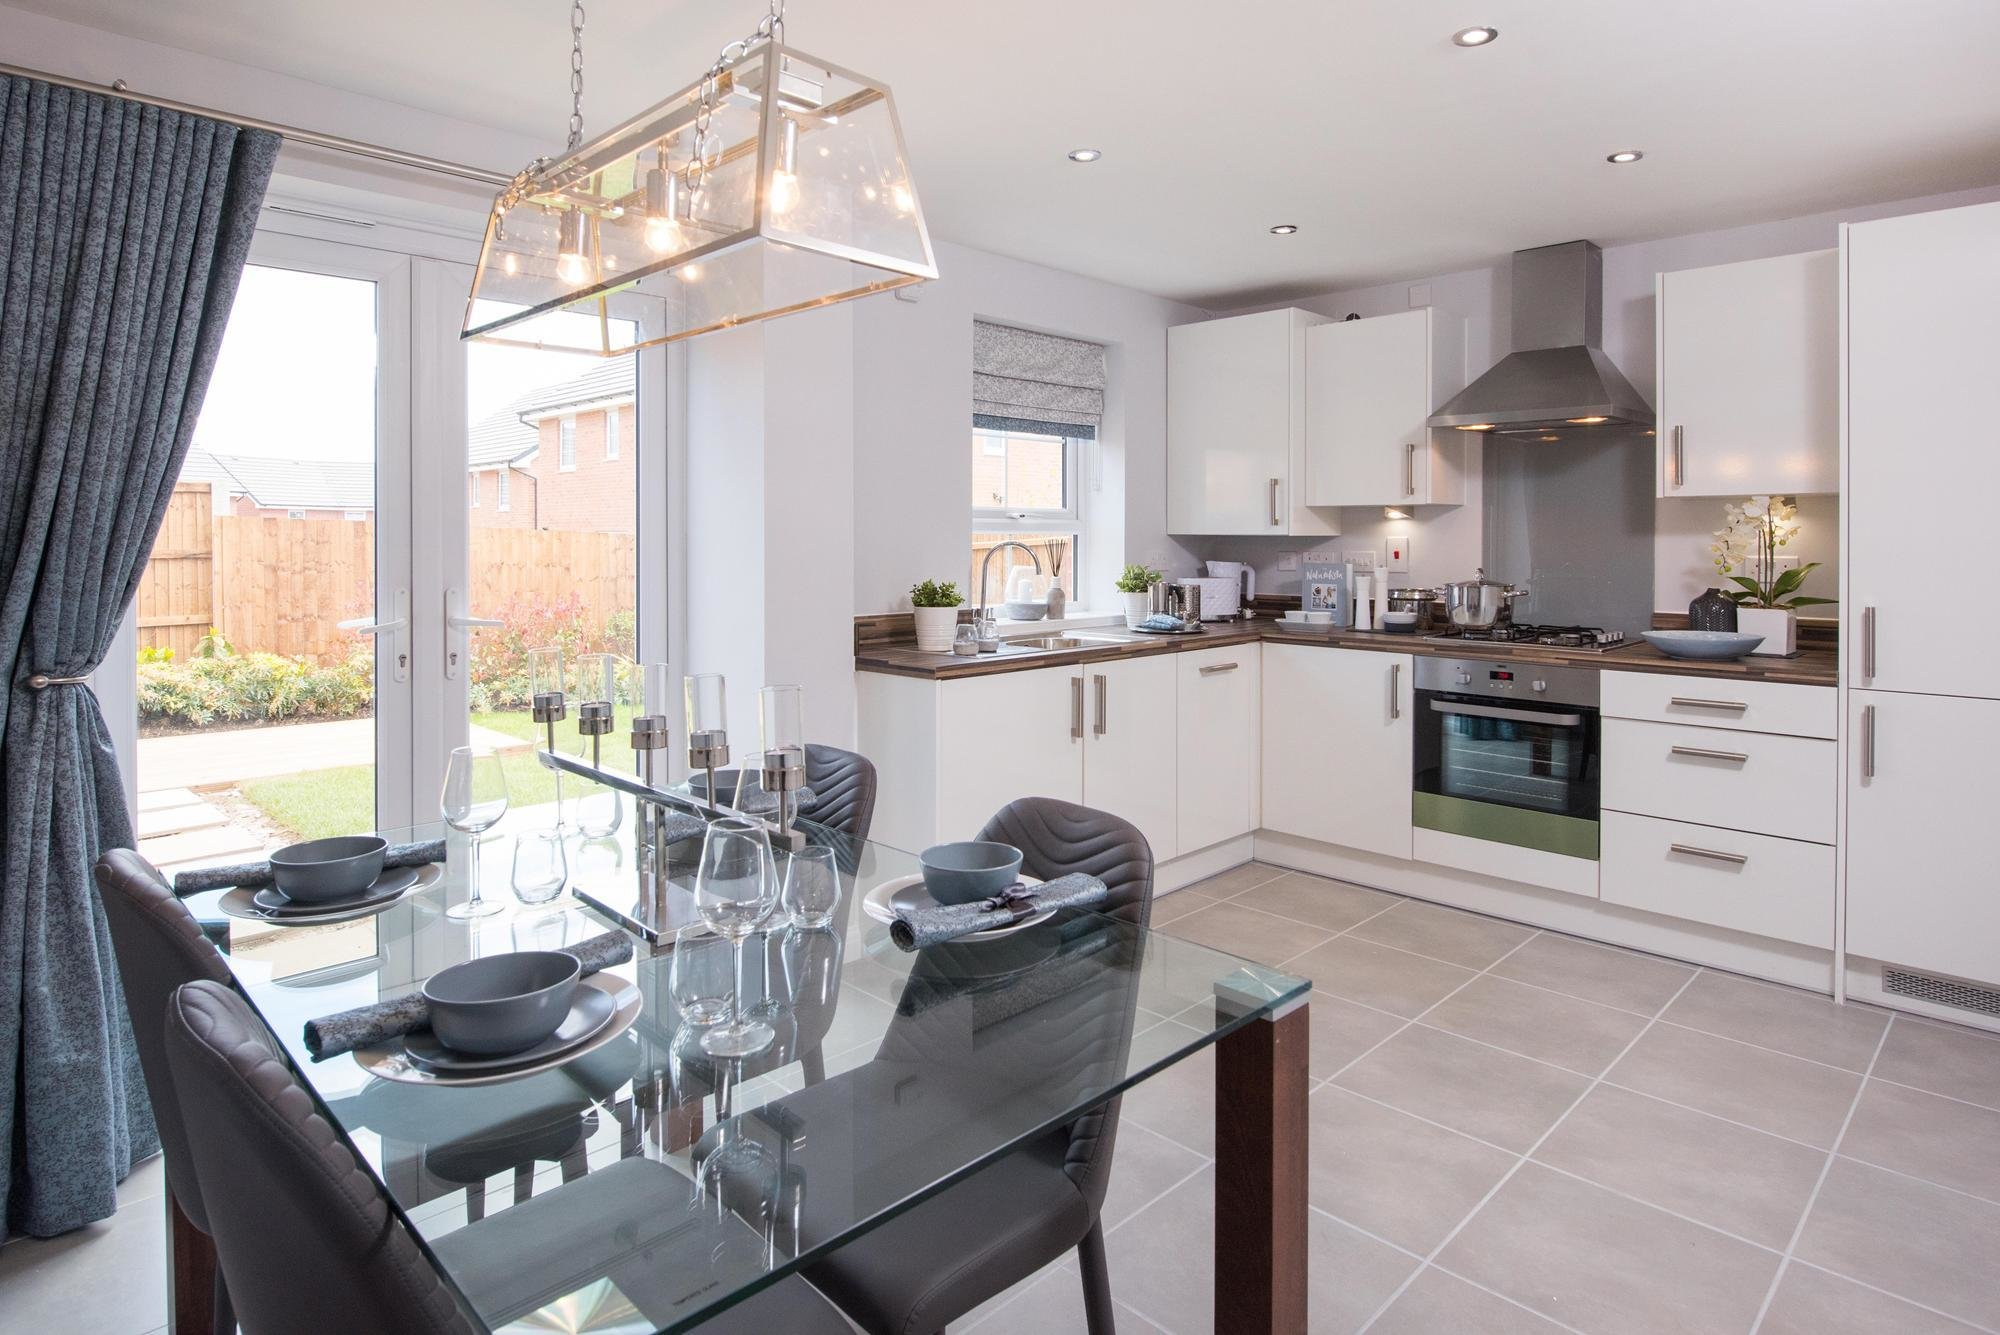 Plot 71, Weaver View, WINSFORD CW7 4AX - WINSFORD - new homes by ...